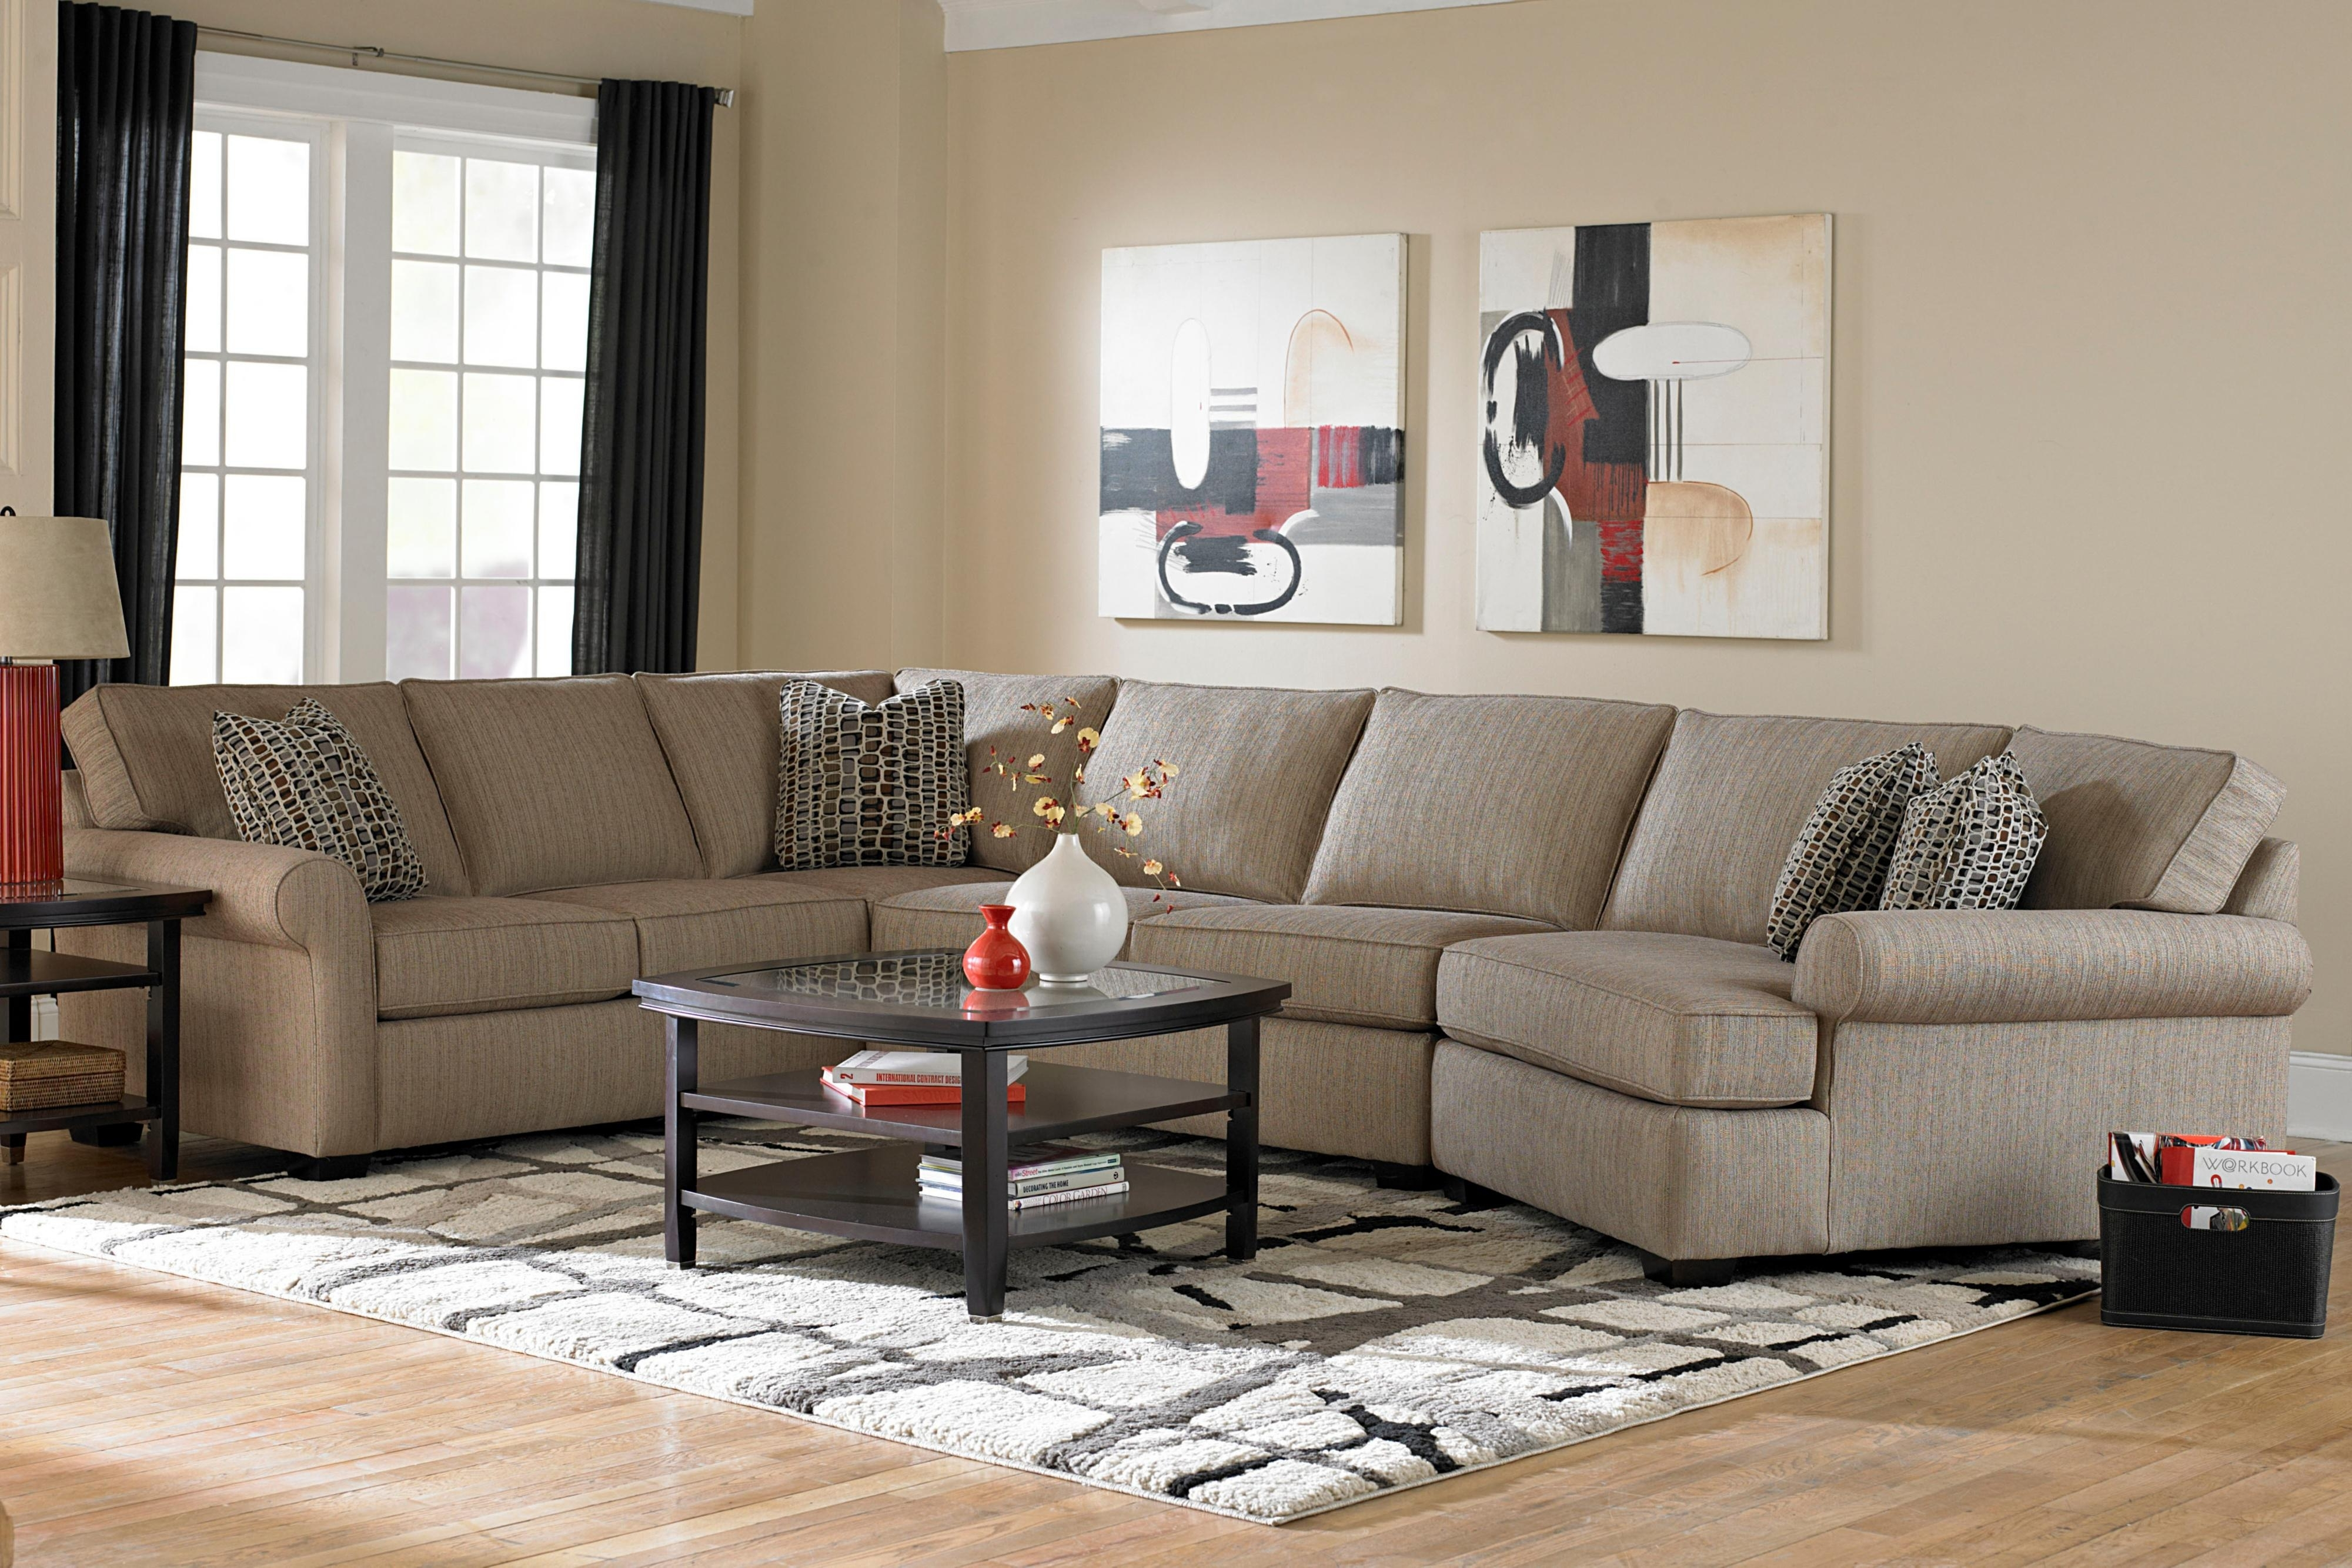 Thomasville Sectional Sofas For Most Recently Released Furniture: Thomasville Furniture Nj (View 13 of 15)